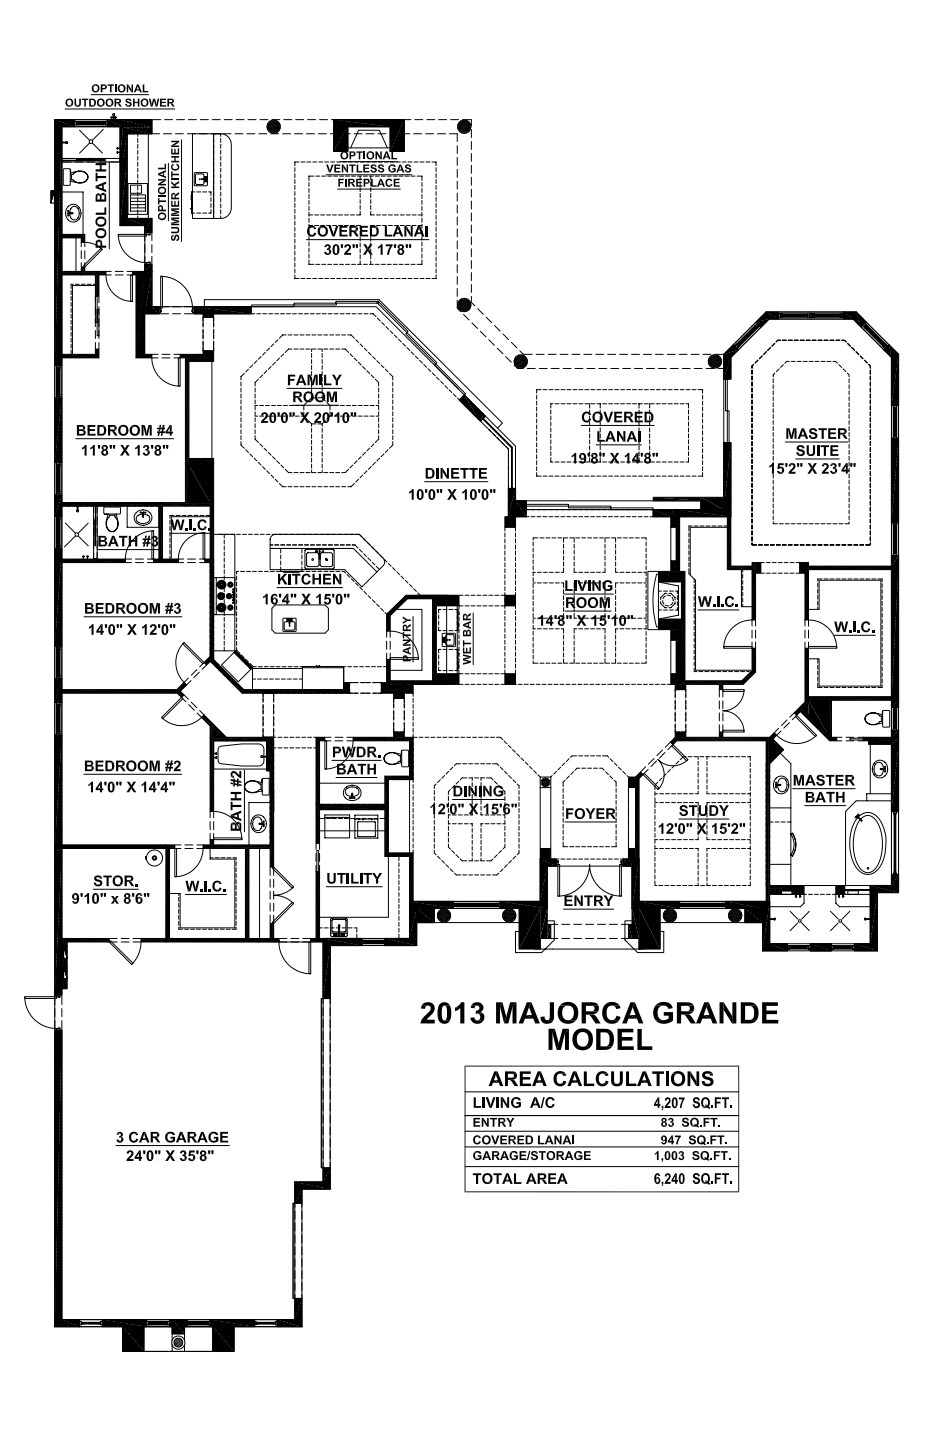 Stock Signature Homes Twin Eagles Majorca Grande Floor Plan